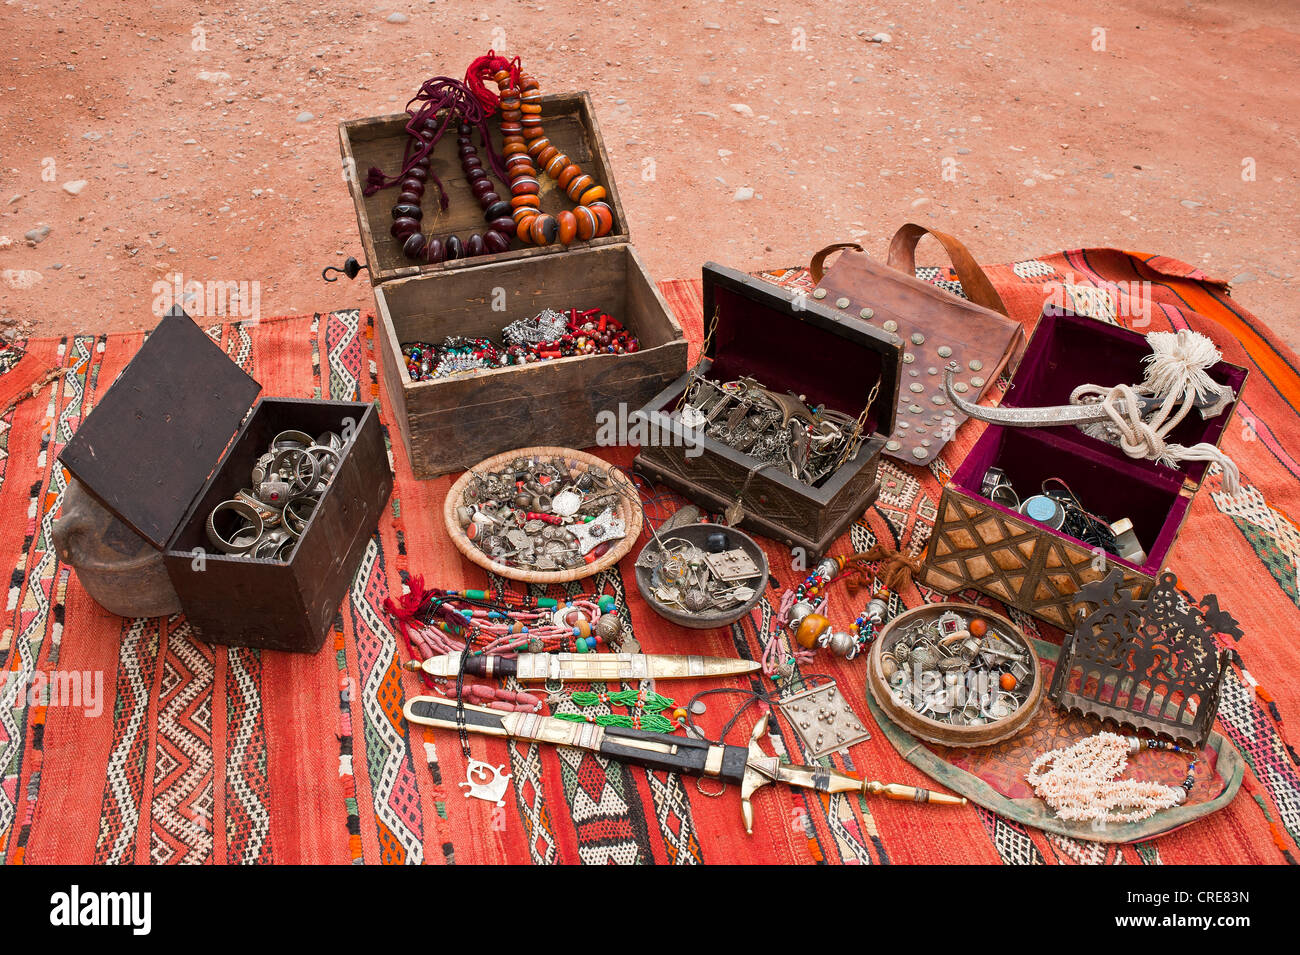 Little treasure chests, traditional oriental jewellery and decorated Touareg knife spread on a carpet, Morocco, - Stock Image